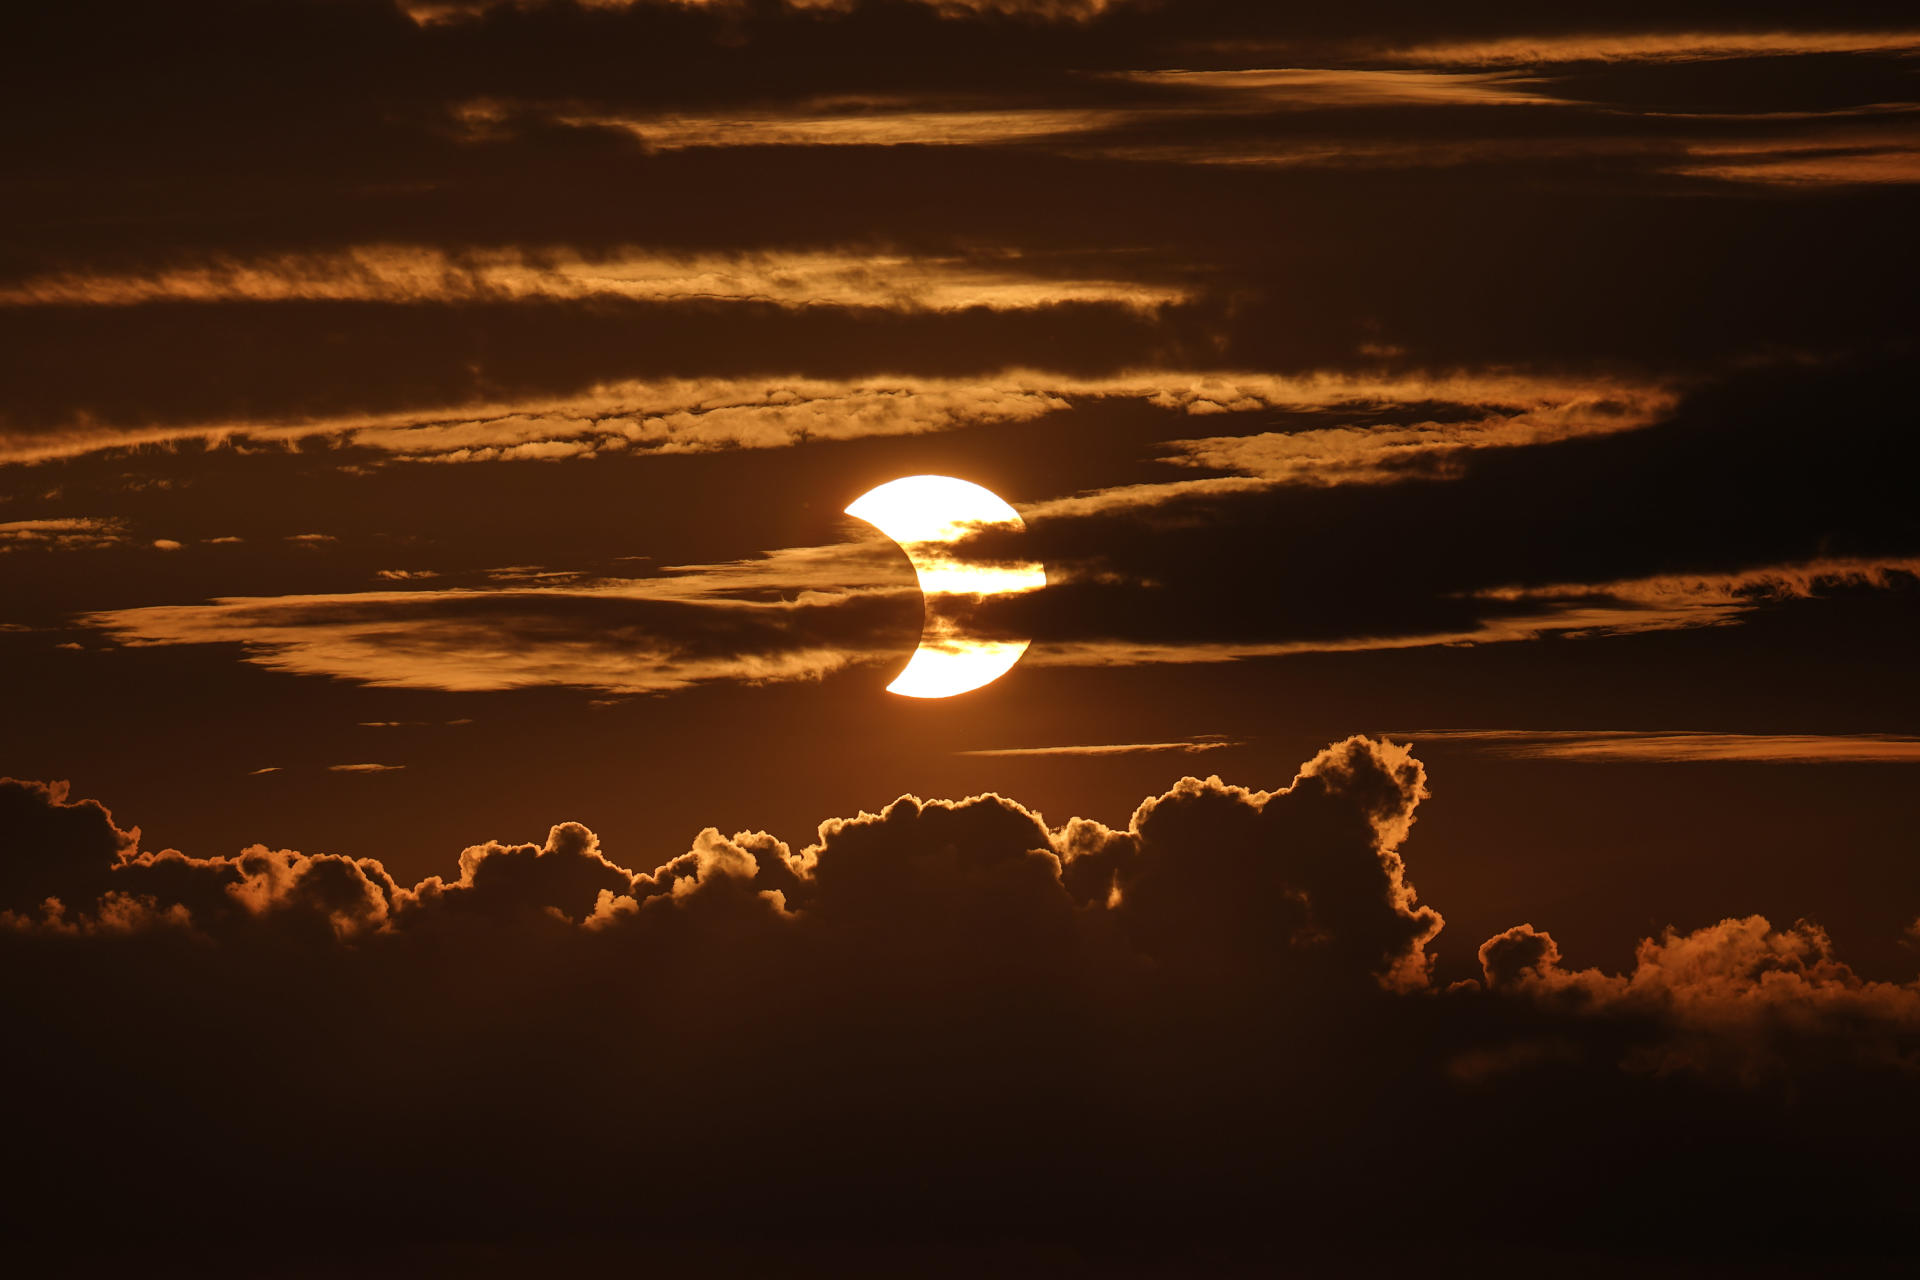 Partial solar eclipse seen on June 10, 2021 from Arbutus, Maryland, USA.